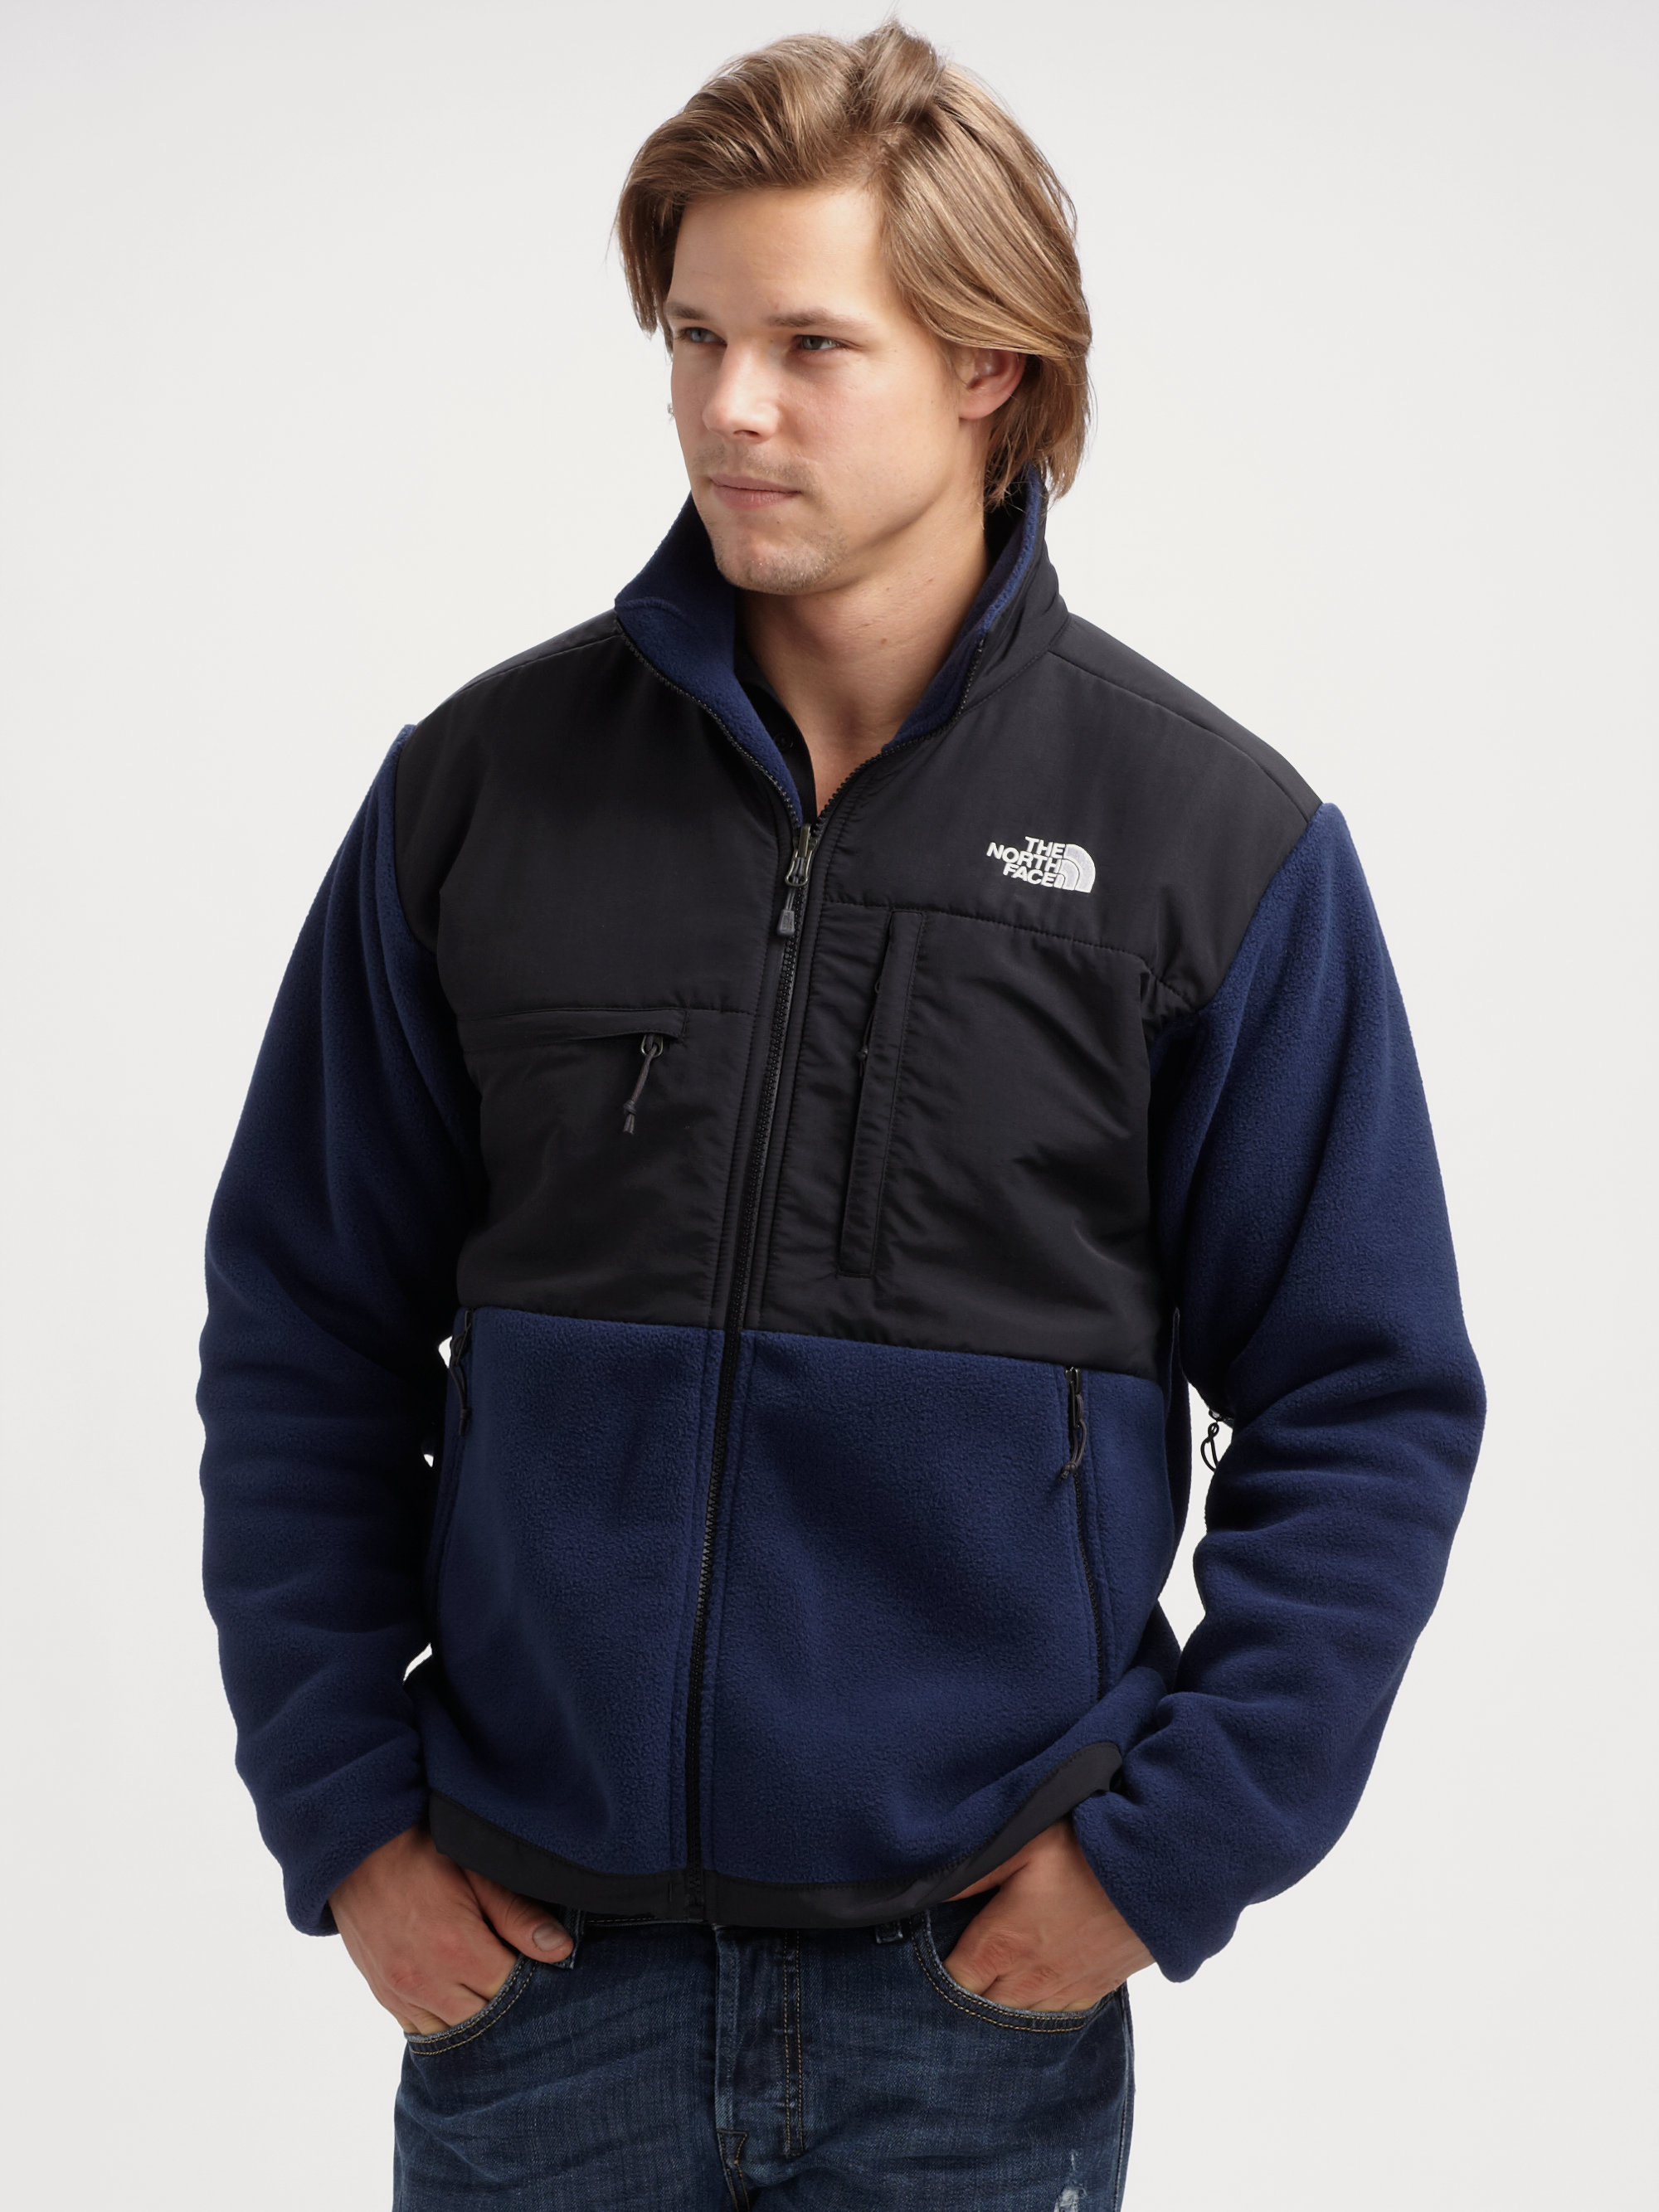 The North Face Denali Fleece Jacket In Blue For Men Lyst